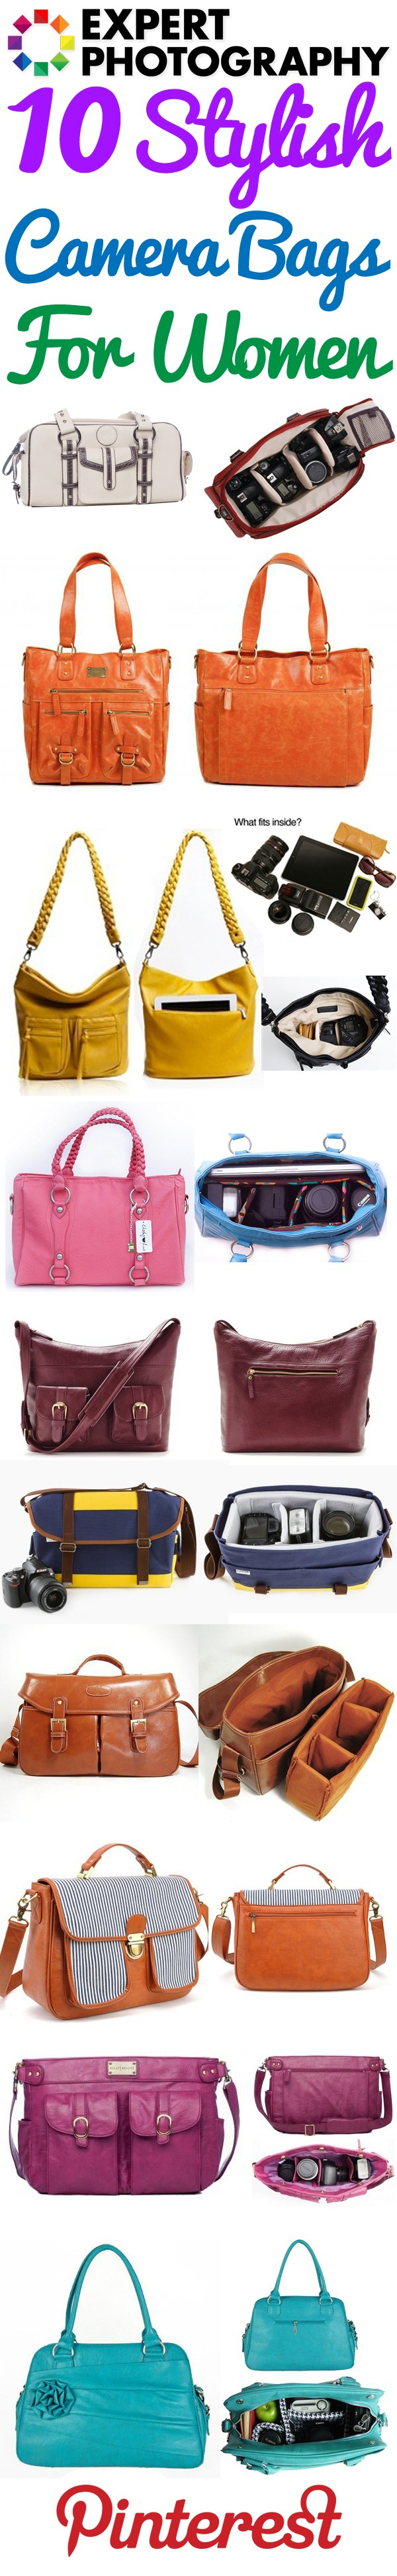 10 Stylish Camera Bags for Women2 10 Stylish Camera Bags for Women